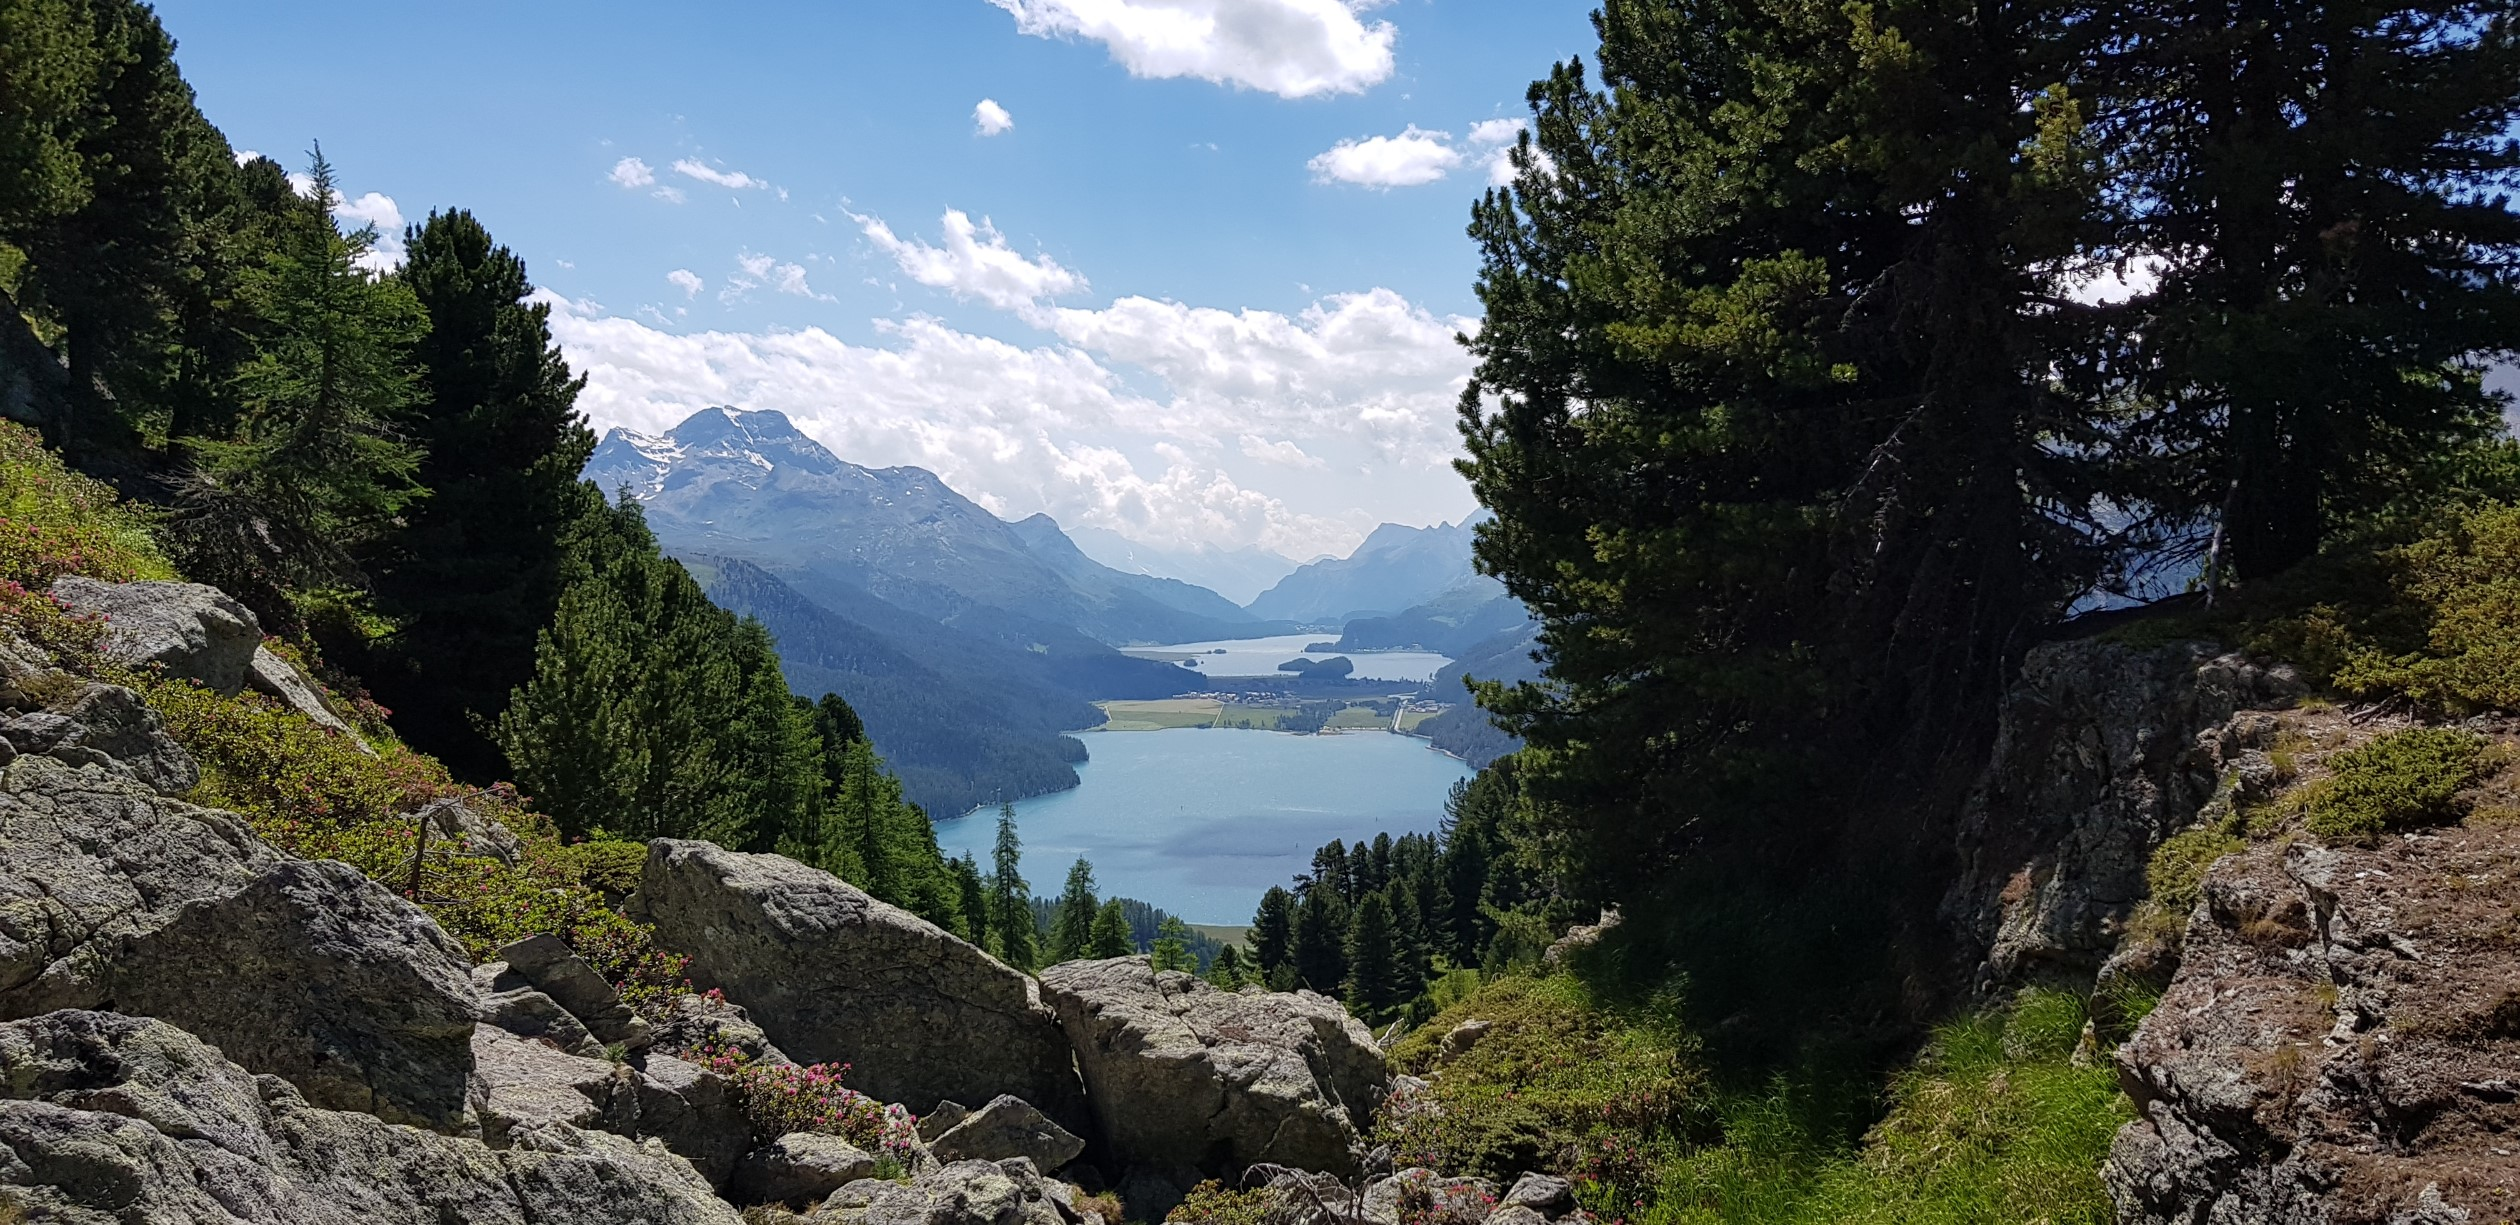 Engadine, St. Moritz, Hahnensee, view in direction Maloja with Lake Silvaplana and Lake Sils, Chaste